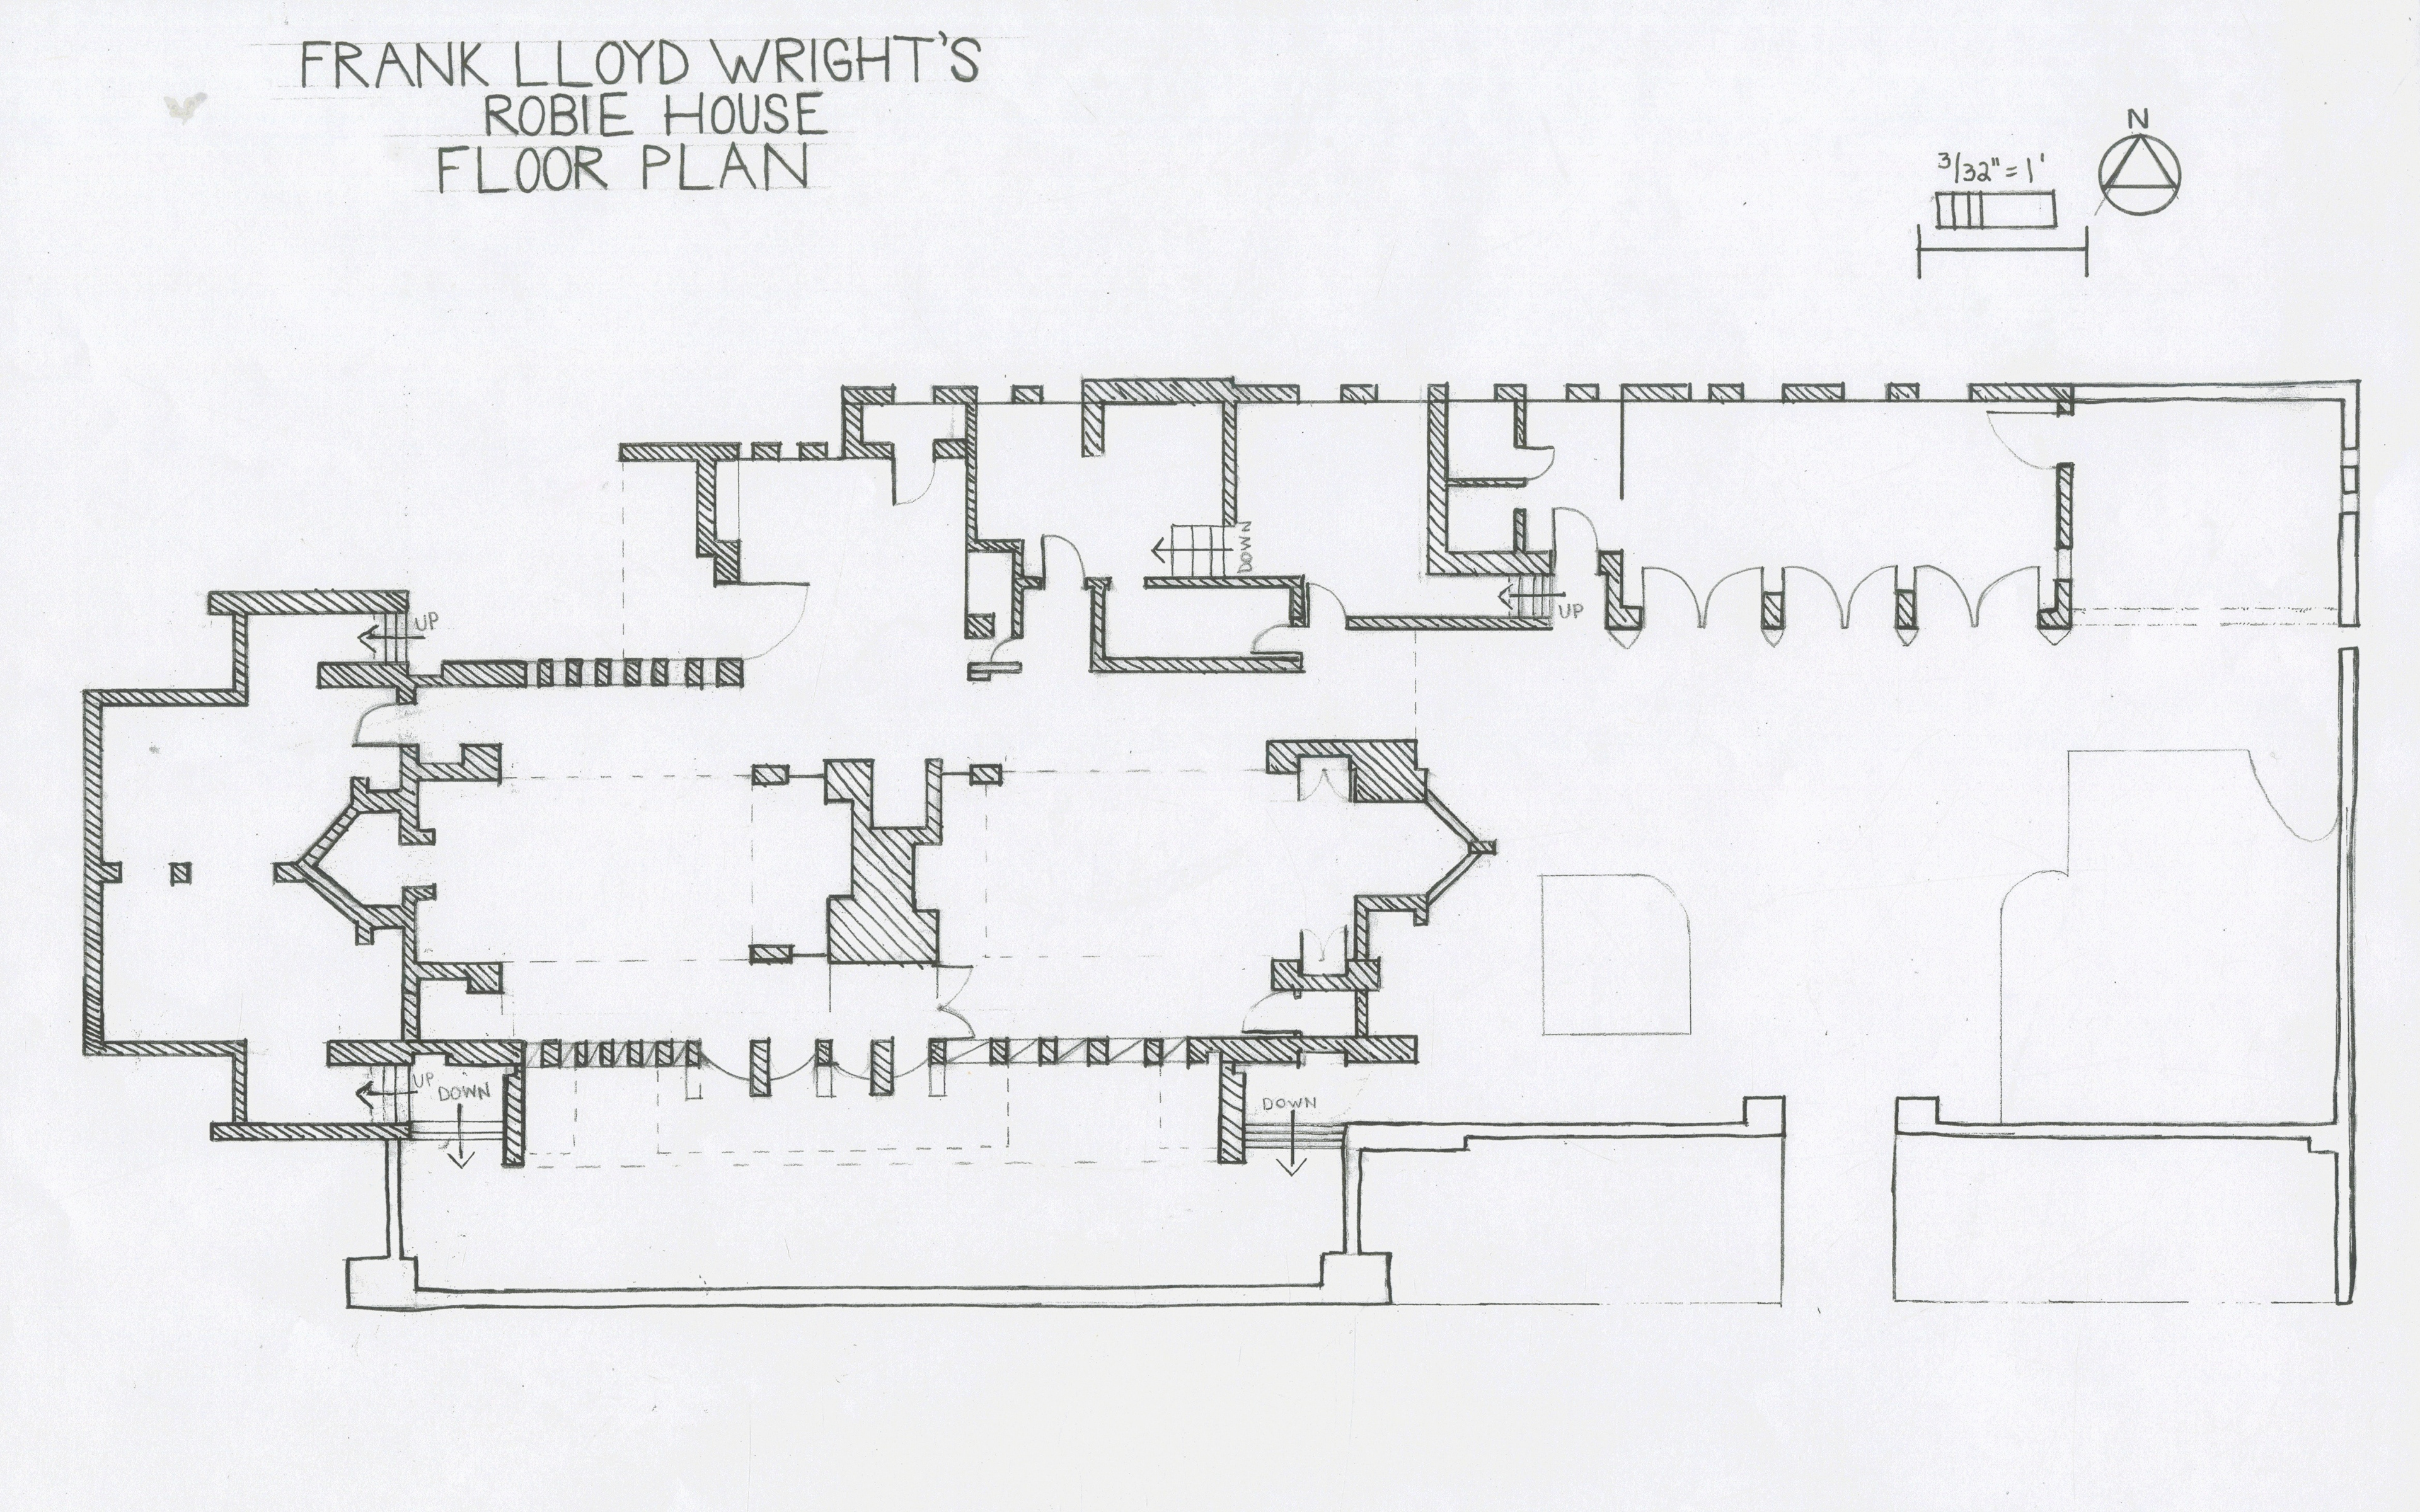 Floor Plan Elevation Section Perspective : Phoebe beachner robie house study